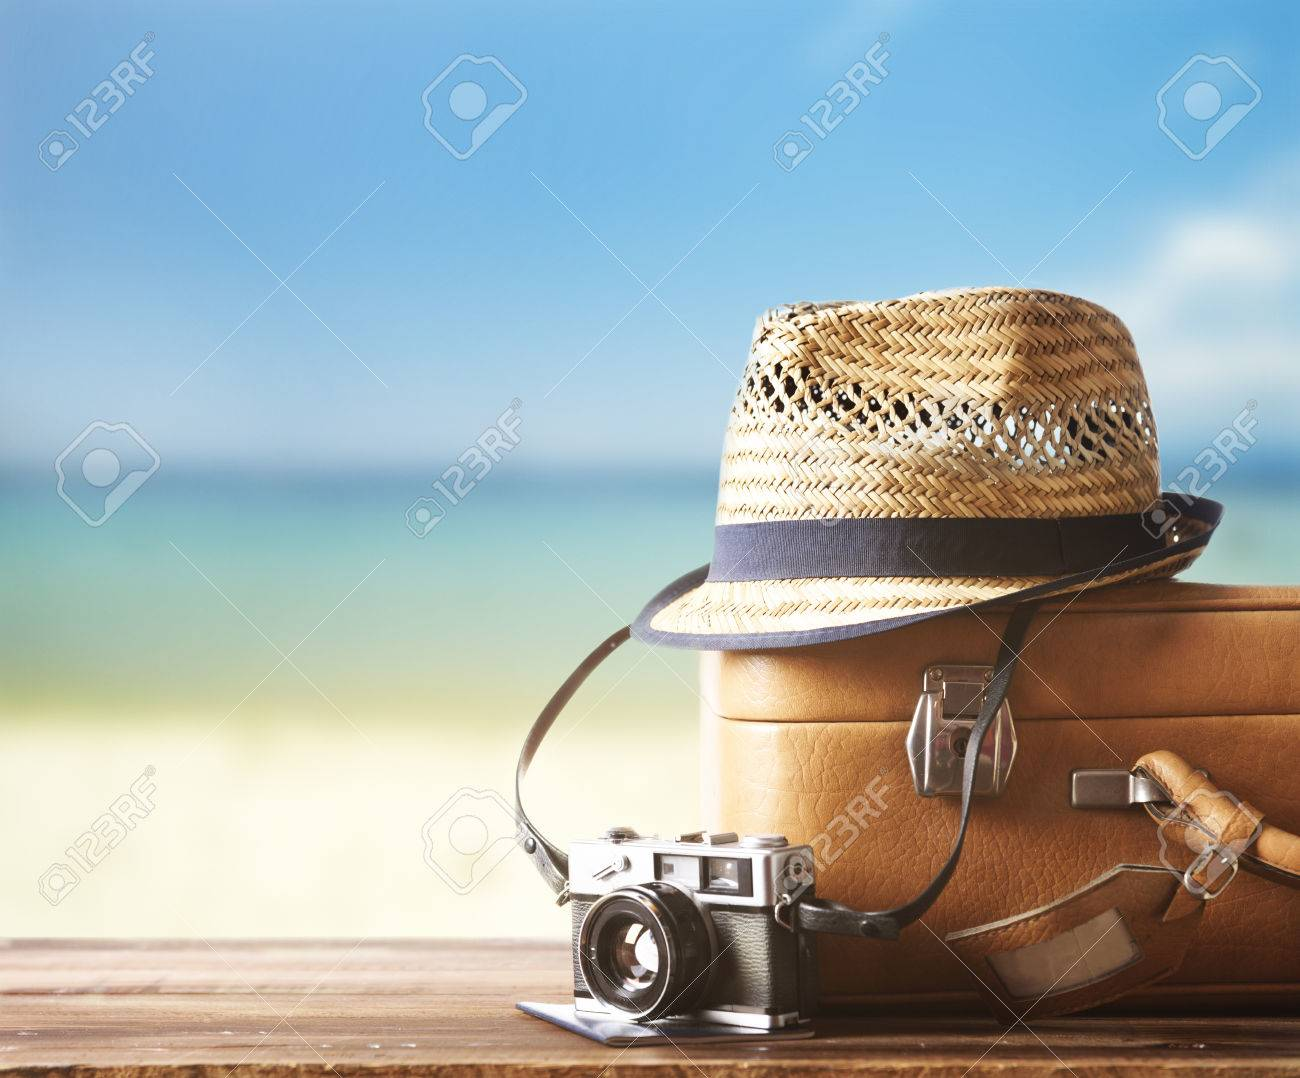 Vintage suitcase, hipster hat, photo camera and passport on wooden deck. Tropical sea and sandy beach a in background. Summer holiday traveling design concept. - 82160169